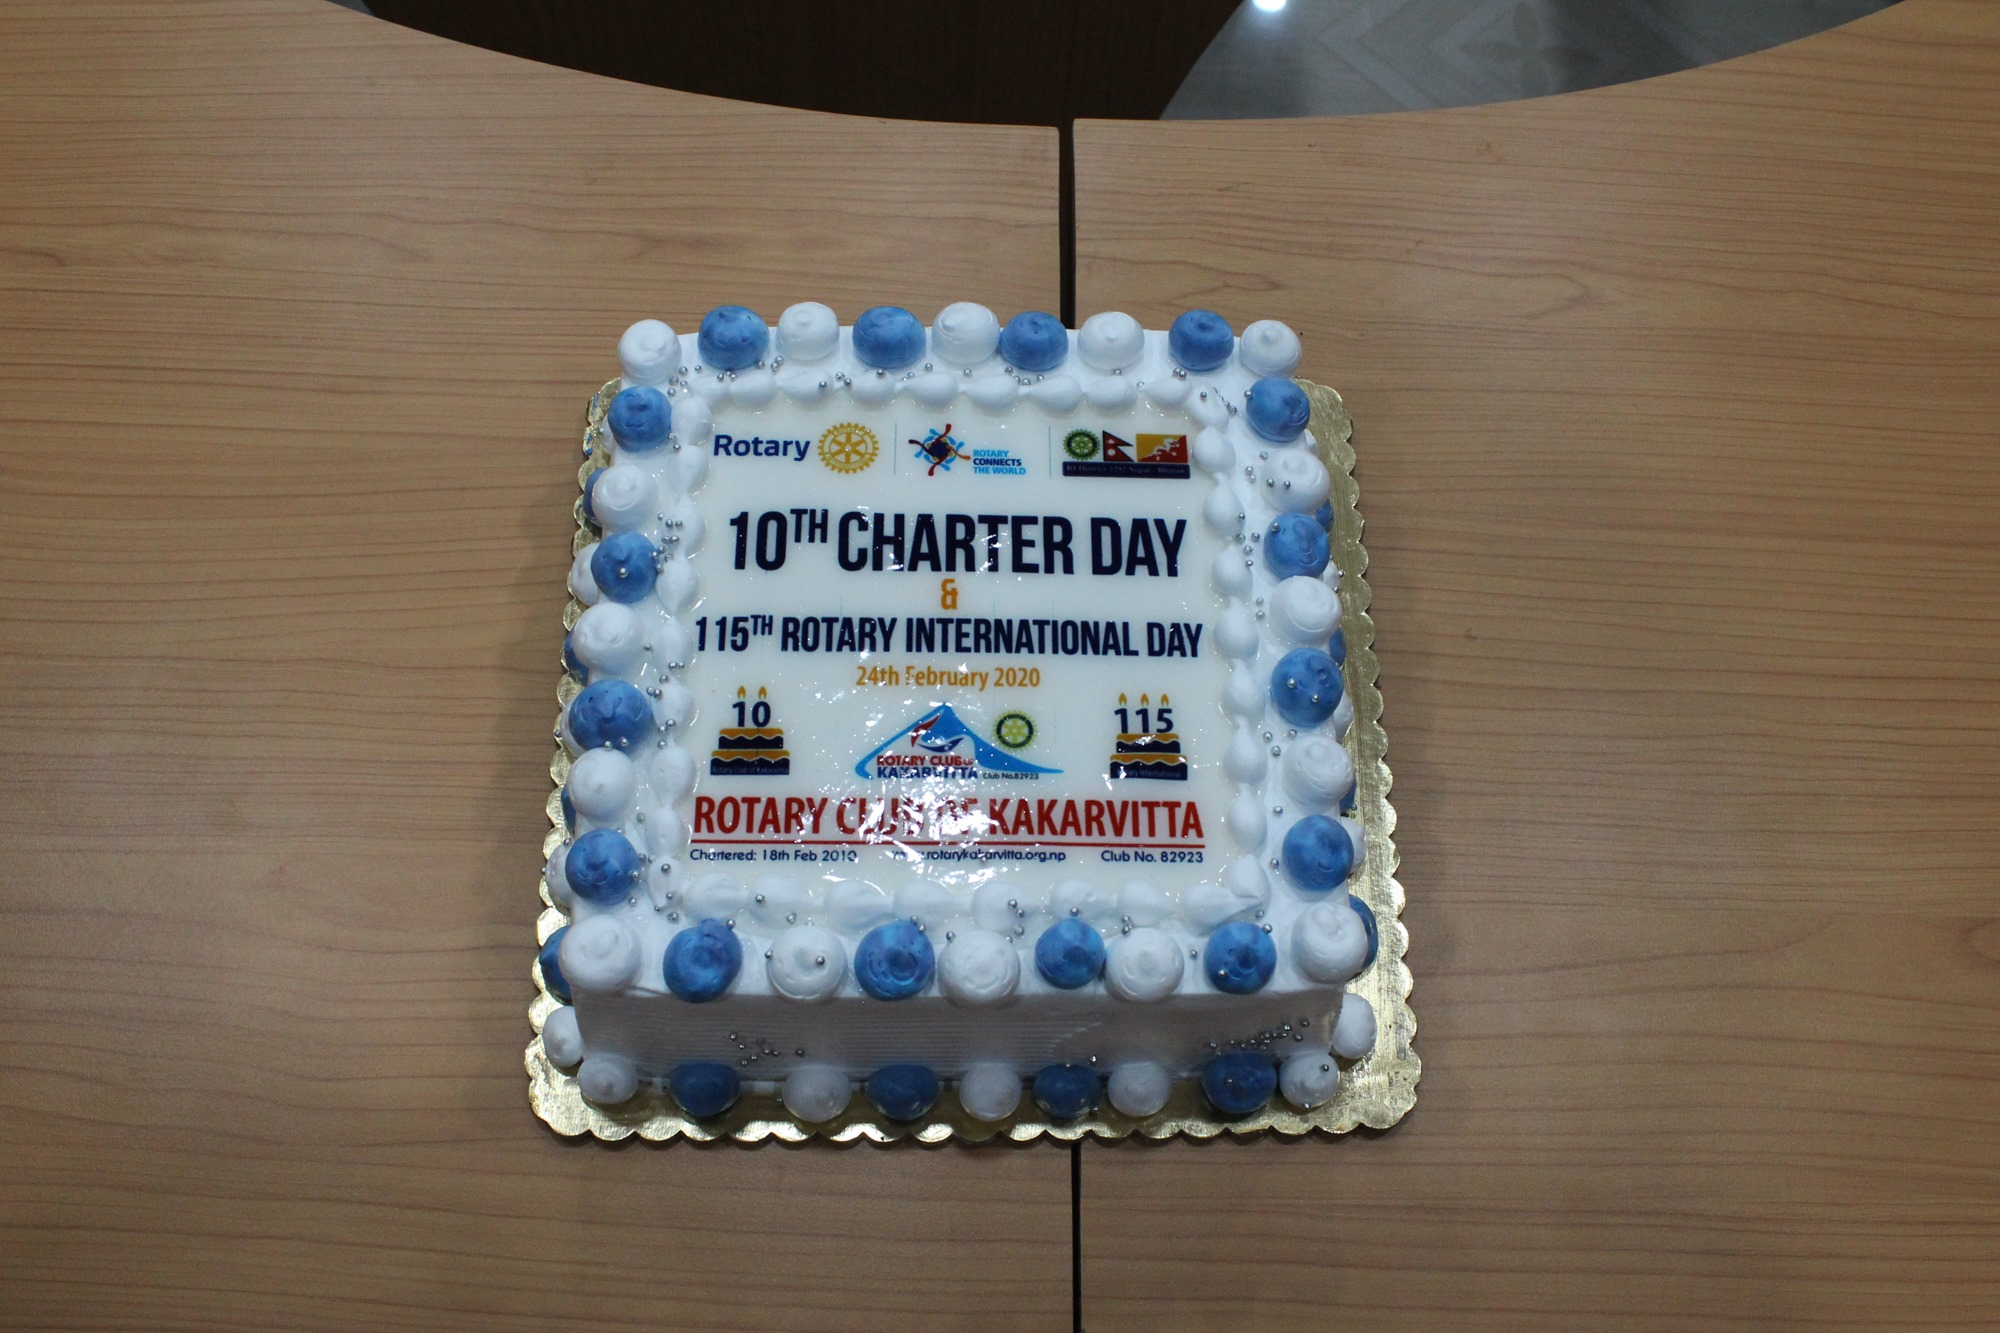 10th Charter Day 115th Rotary International Day 43